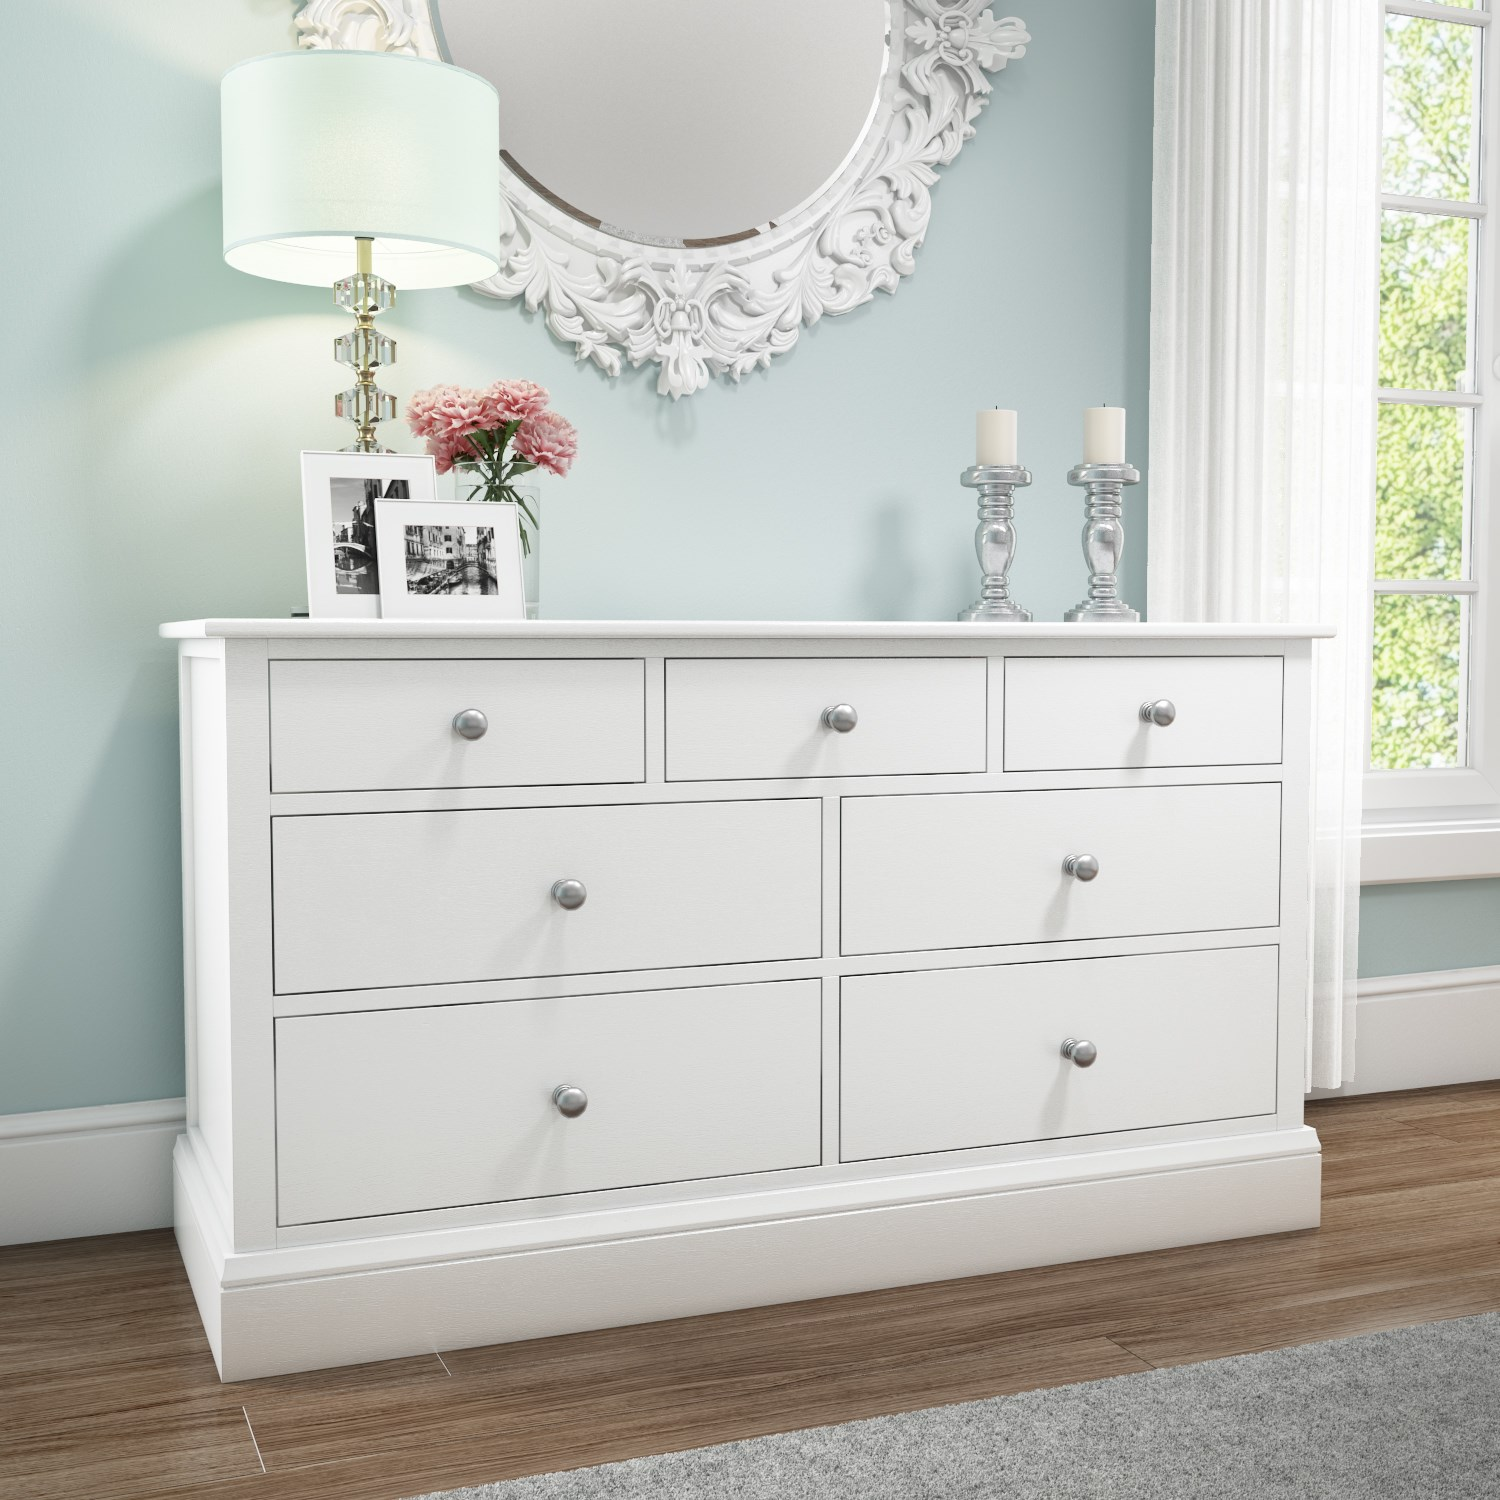 Harper solid wood 4 3 wide chest of drawers in white hrp005 ebay for White bedroom chest of drawers